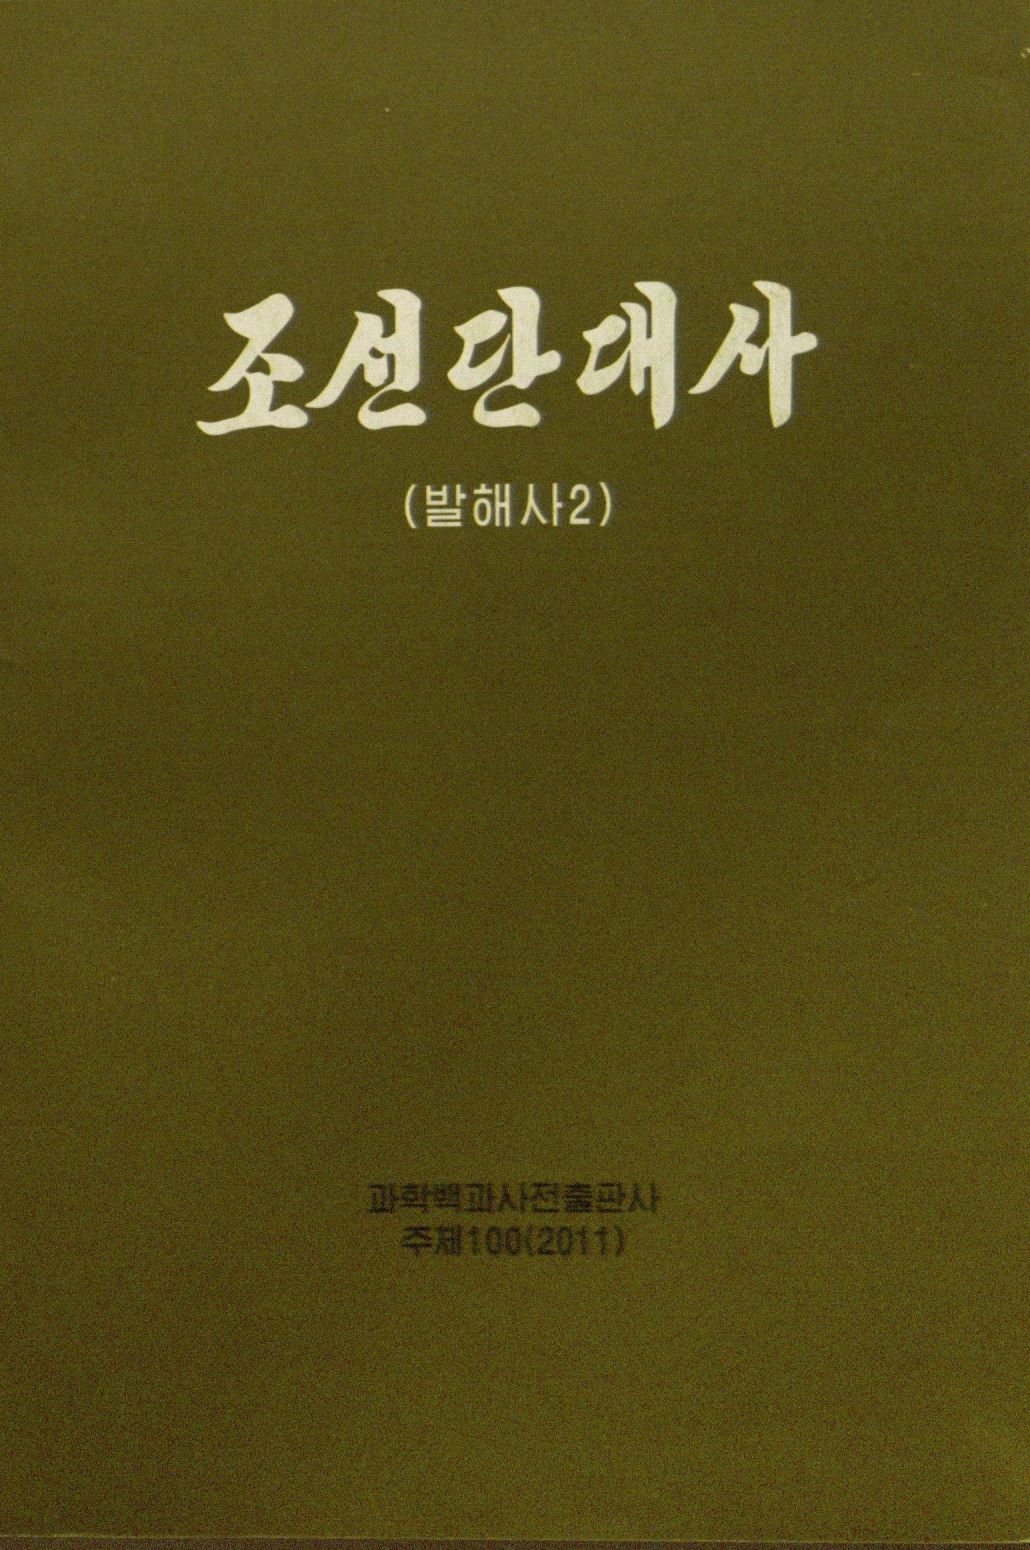 title page of 조선단대사: 발해사 2